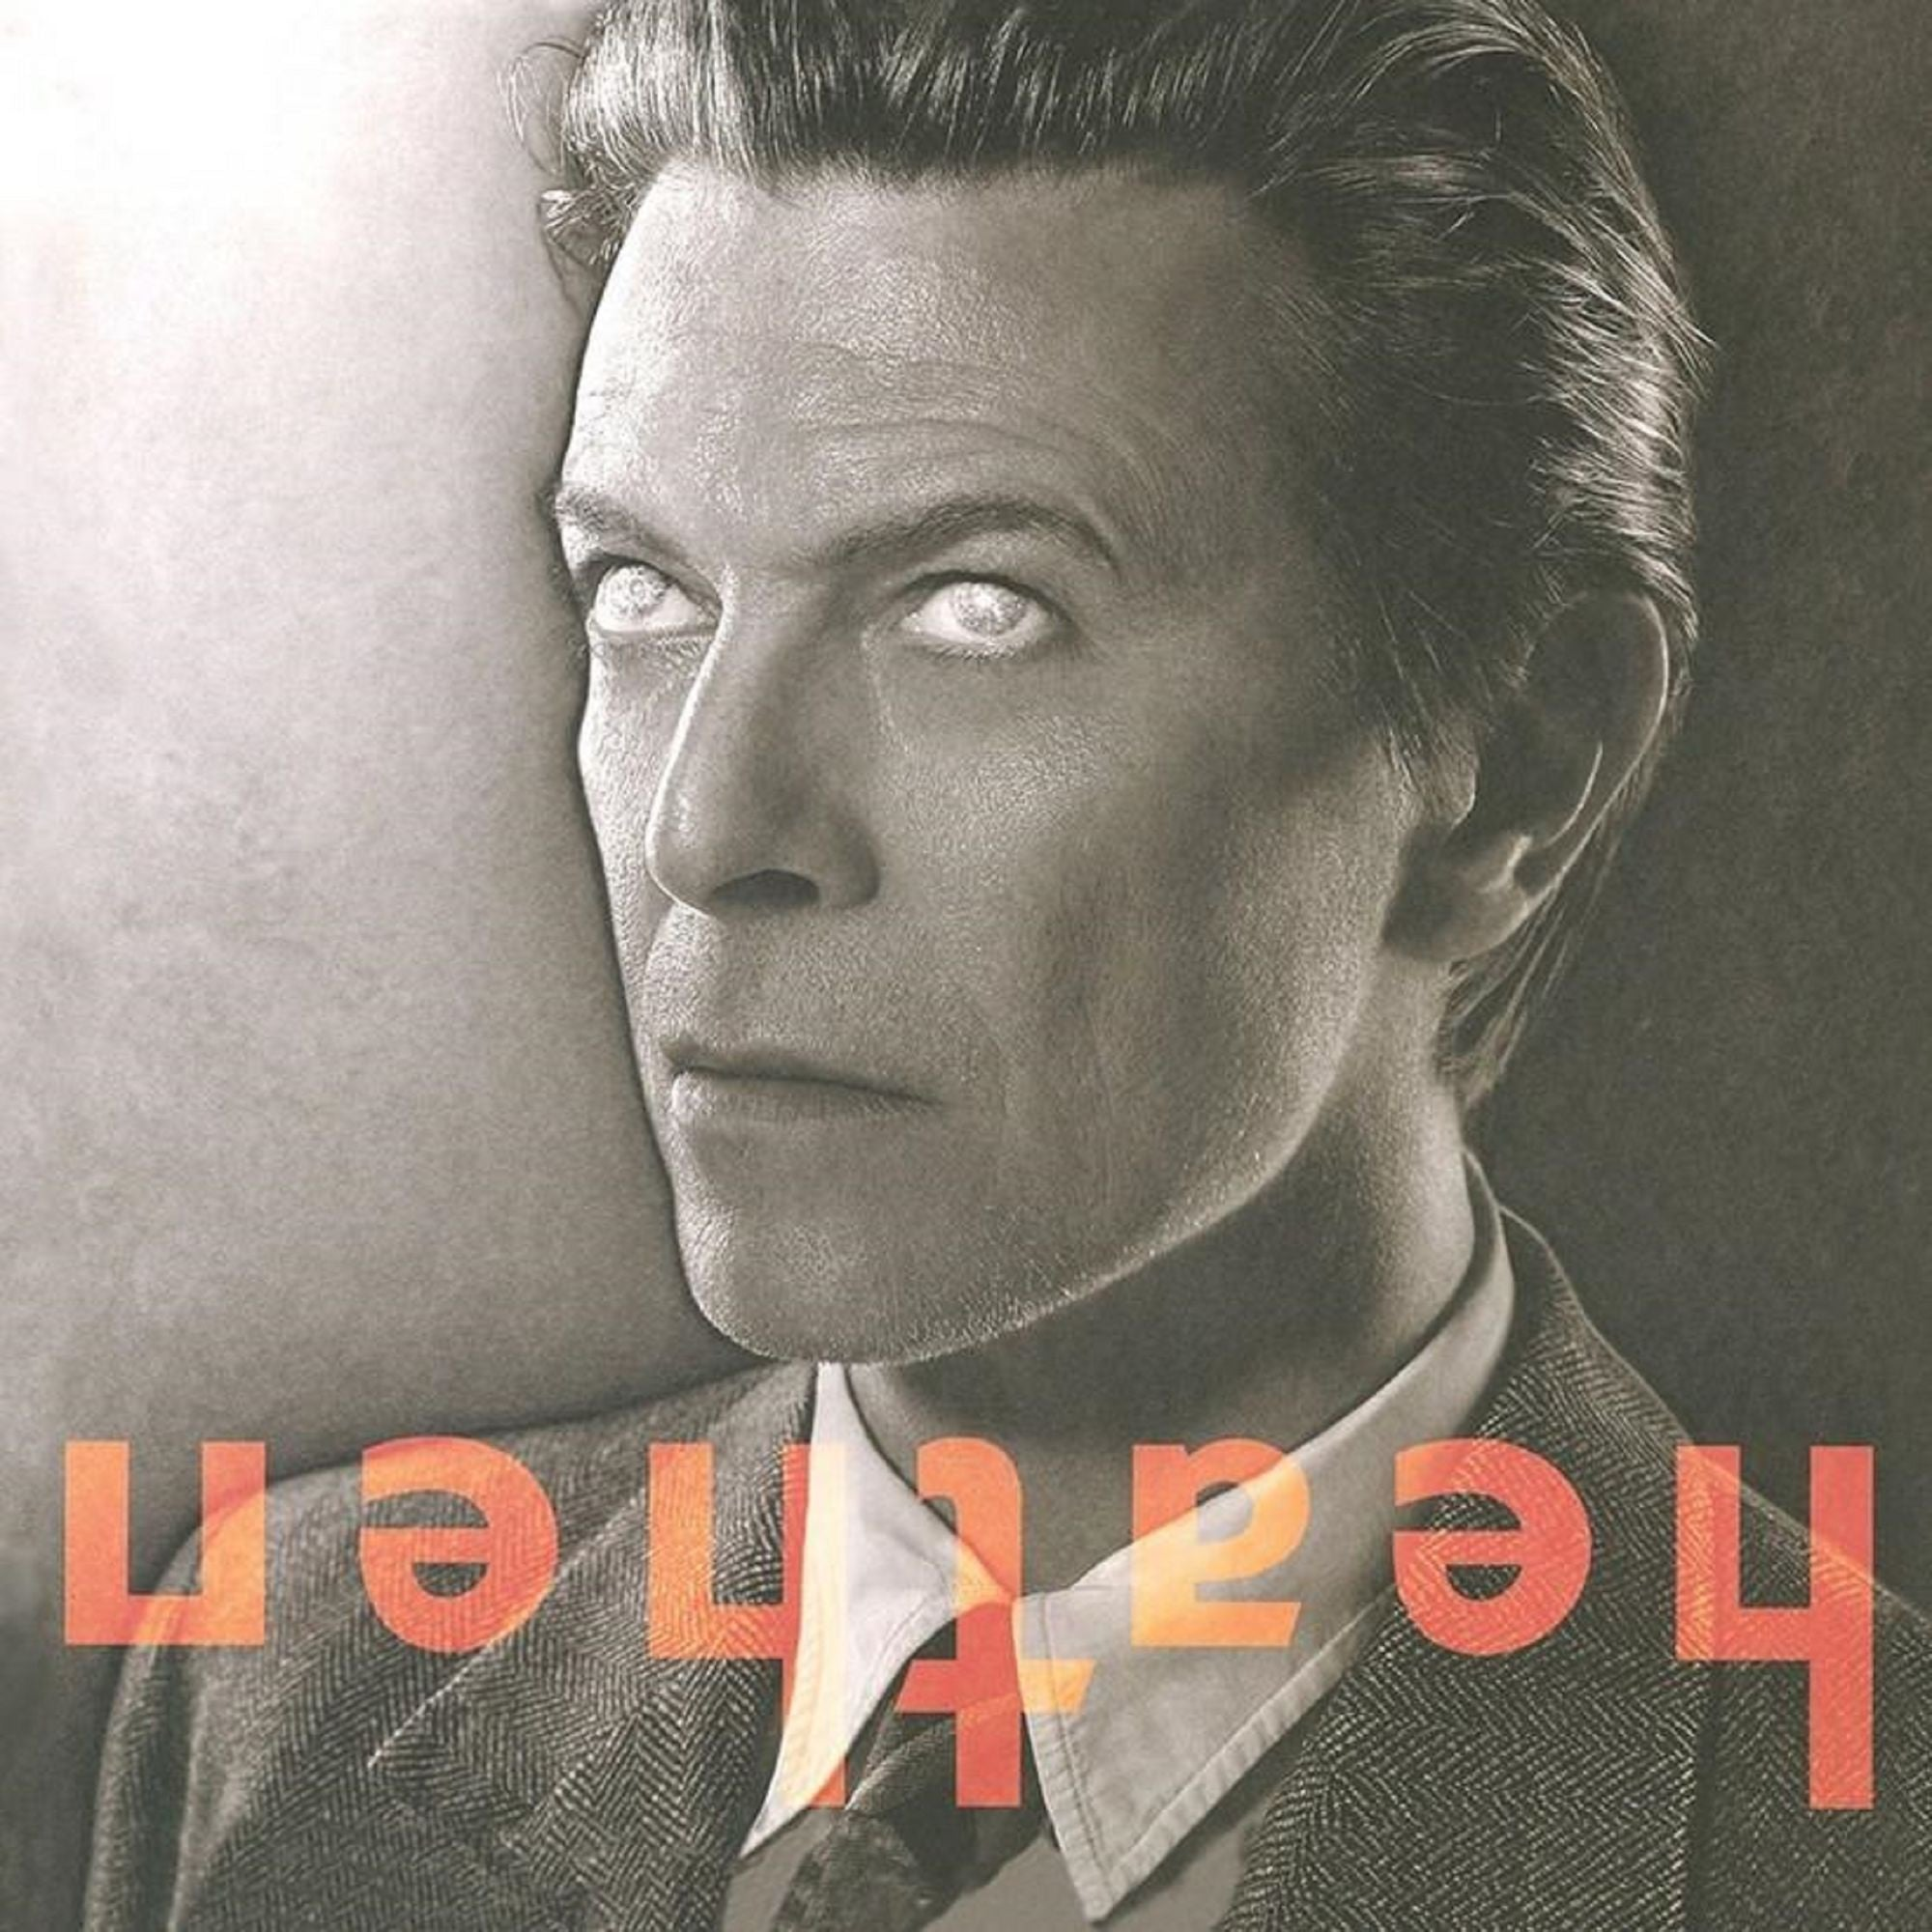 David Bowie - Heathen - New Vinyl Lp 2018 Friday Music Limited Edition 180gram Audiophile Reissue on Platinum & Orange Swirl Vinyl with Tri-Fold Cover - Art Rock